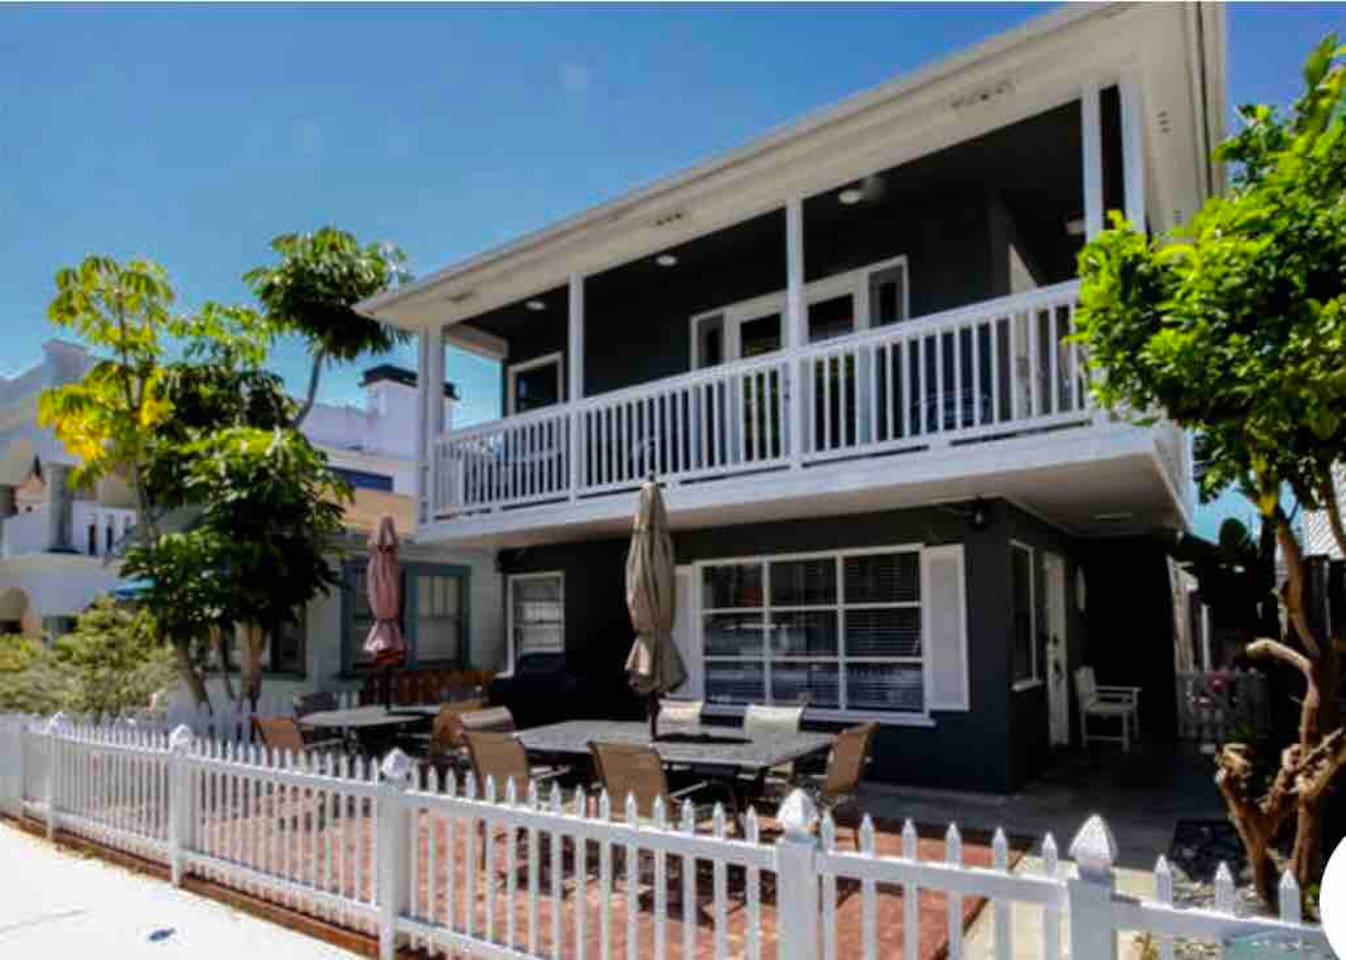 This charming 1940's duplex has been completely renovated 3 years ago. It is 3 homes from the bay front and bay boardwalk and 1 and 1/2 blocks to the beach. It is perfect for families and friends who want to be together but have their own space.